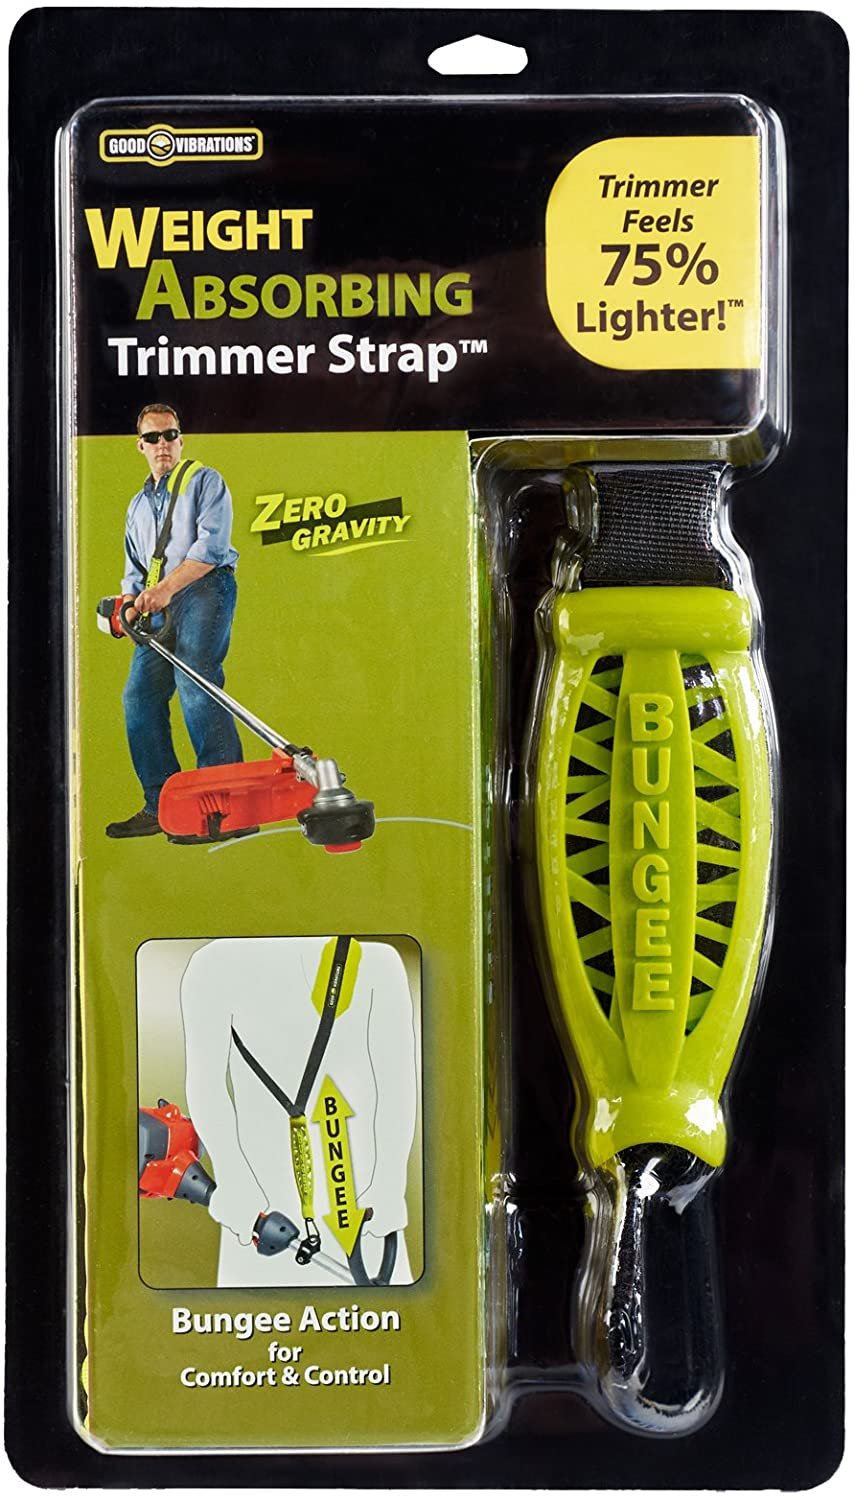 Good Vibrations Zero Gravity - Universal Weight Absorbing String Trimmer Strap with Bungee PRO-X System & Deluxe Comfort Shoulder Pad - Reliefs Body Tensions & Stabilizes Trimmer for Maximum Control : Garden & Outdoor